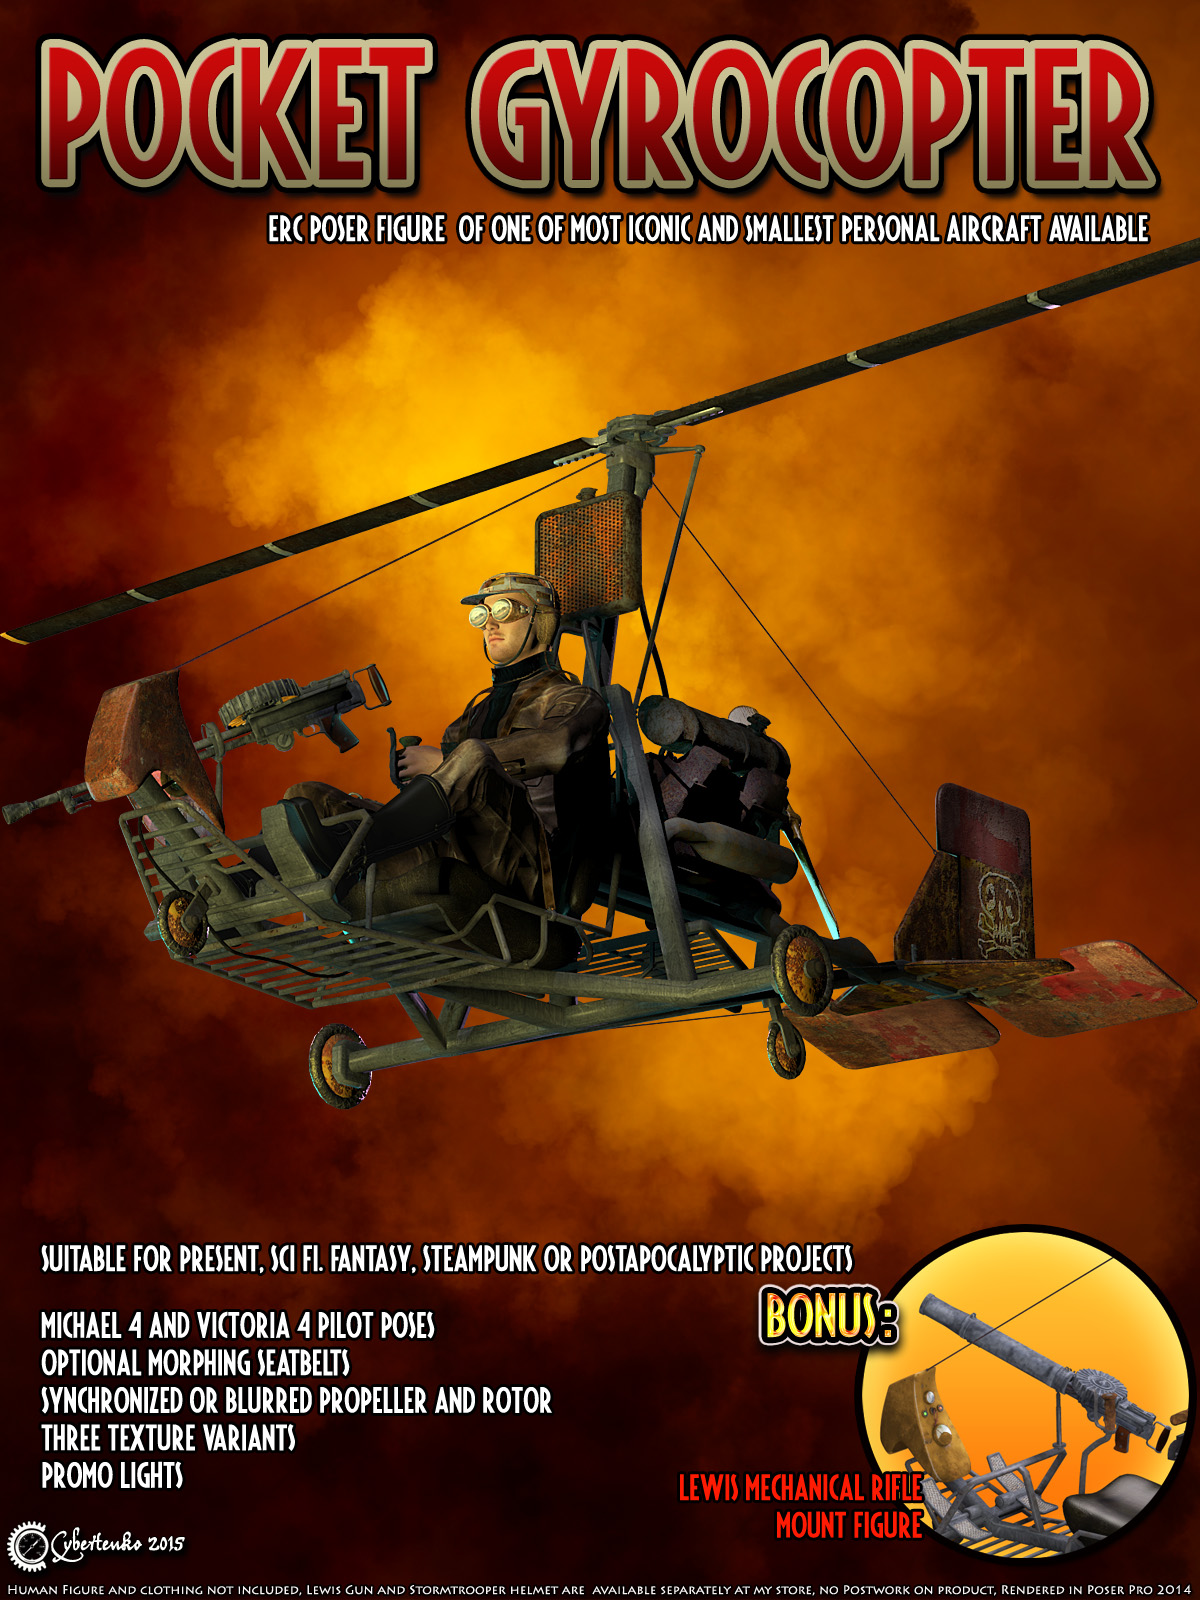 Pocket Gyrocopter - Extended License